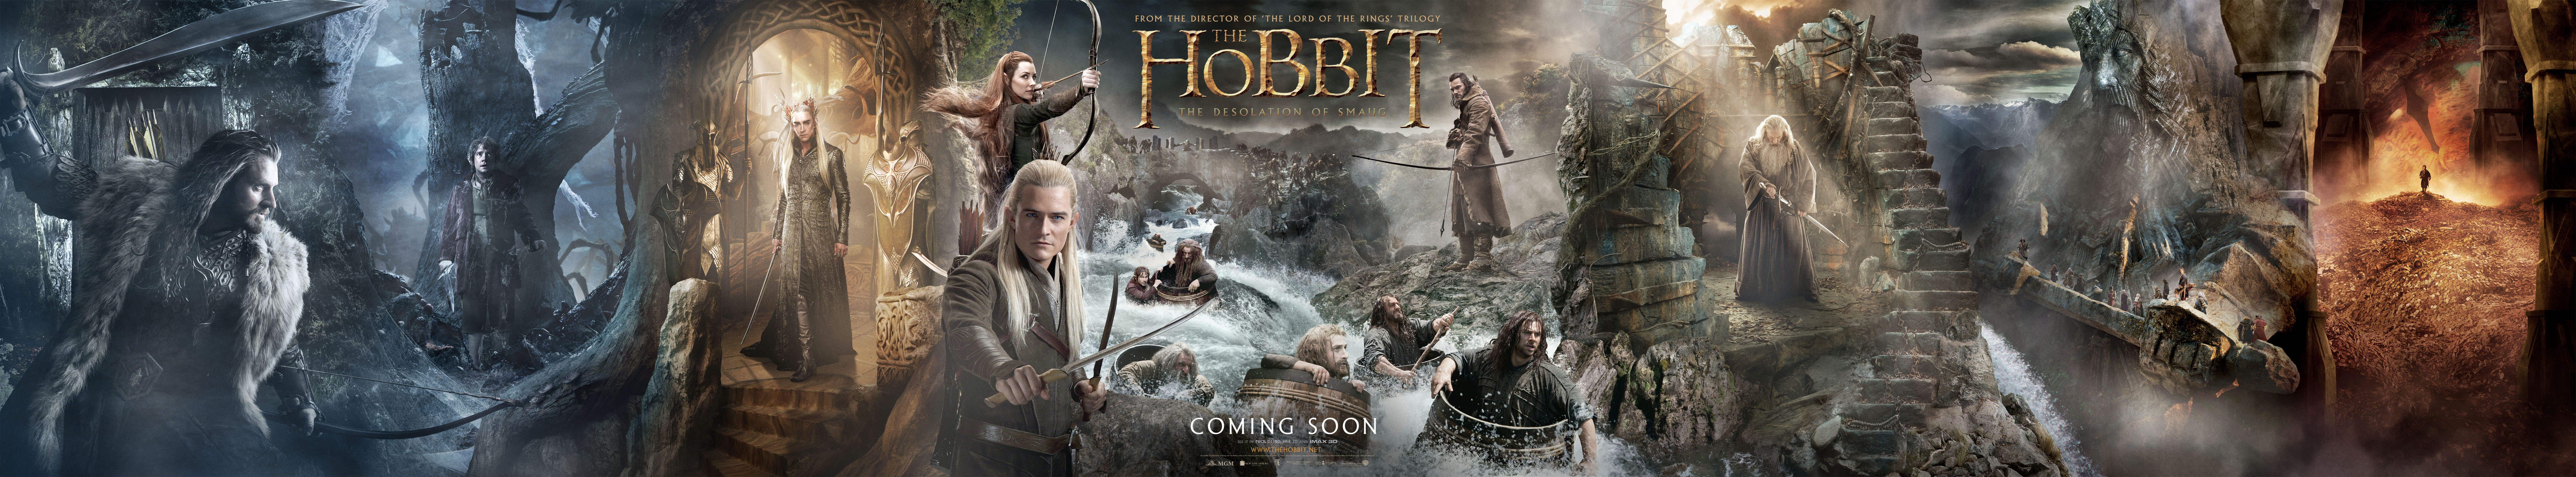 hobbit overview The silmarillion is a  overview the silmarillion  seeing in its tales the genesis of middle-earth and later events as told in the hobbit and.